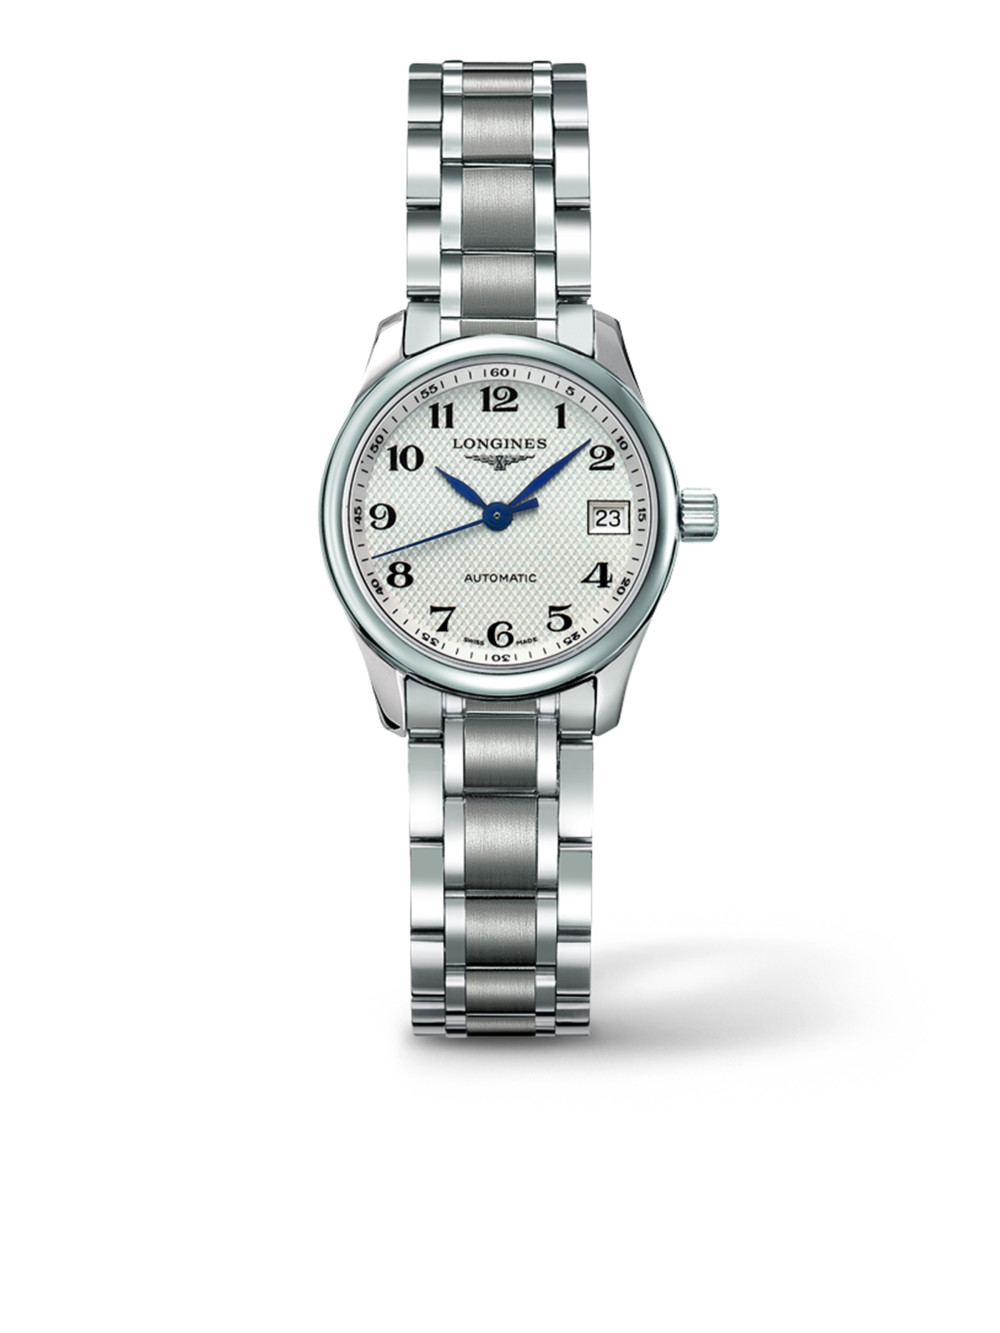 The Longines Master Collection 01